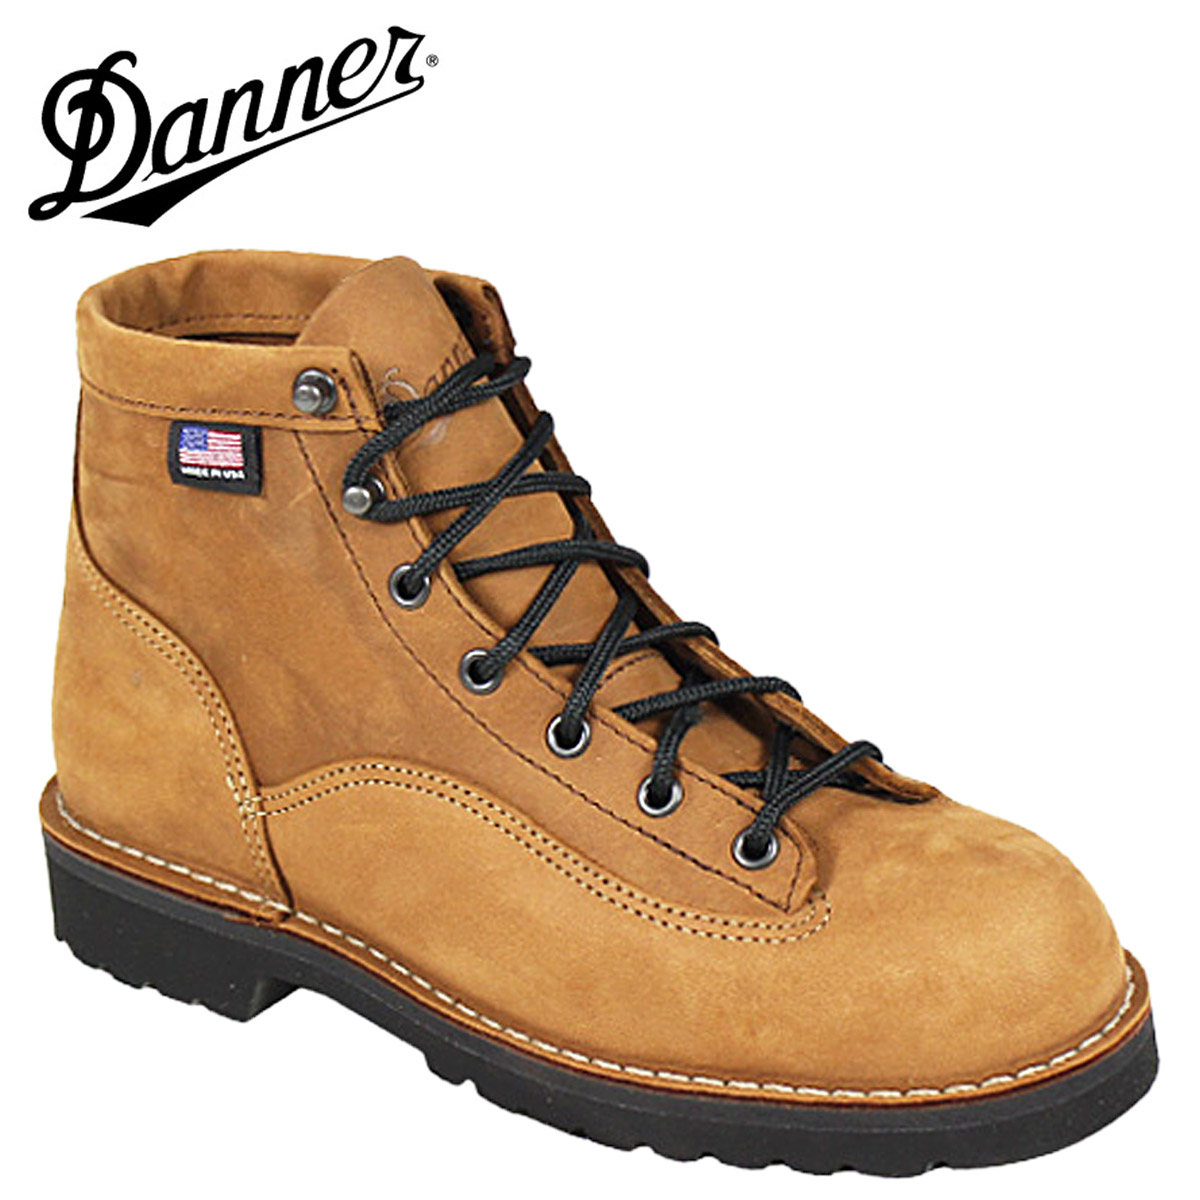 c82bf358f70 [SOLD OUT] Danner Danner boots BULL RUN 102 15570 EE wise men